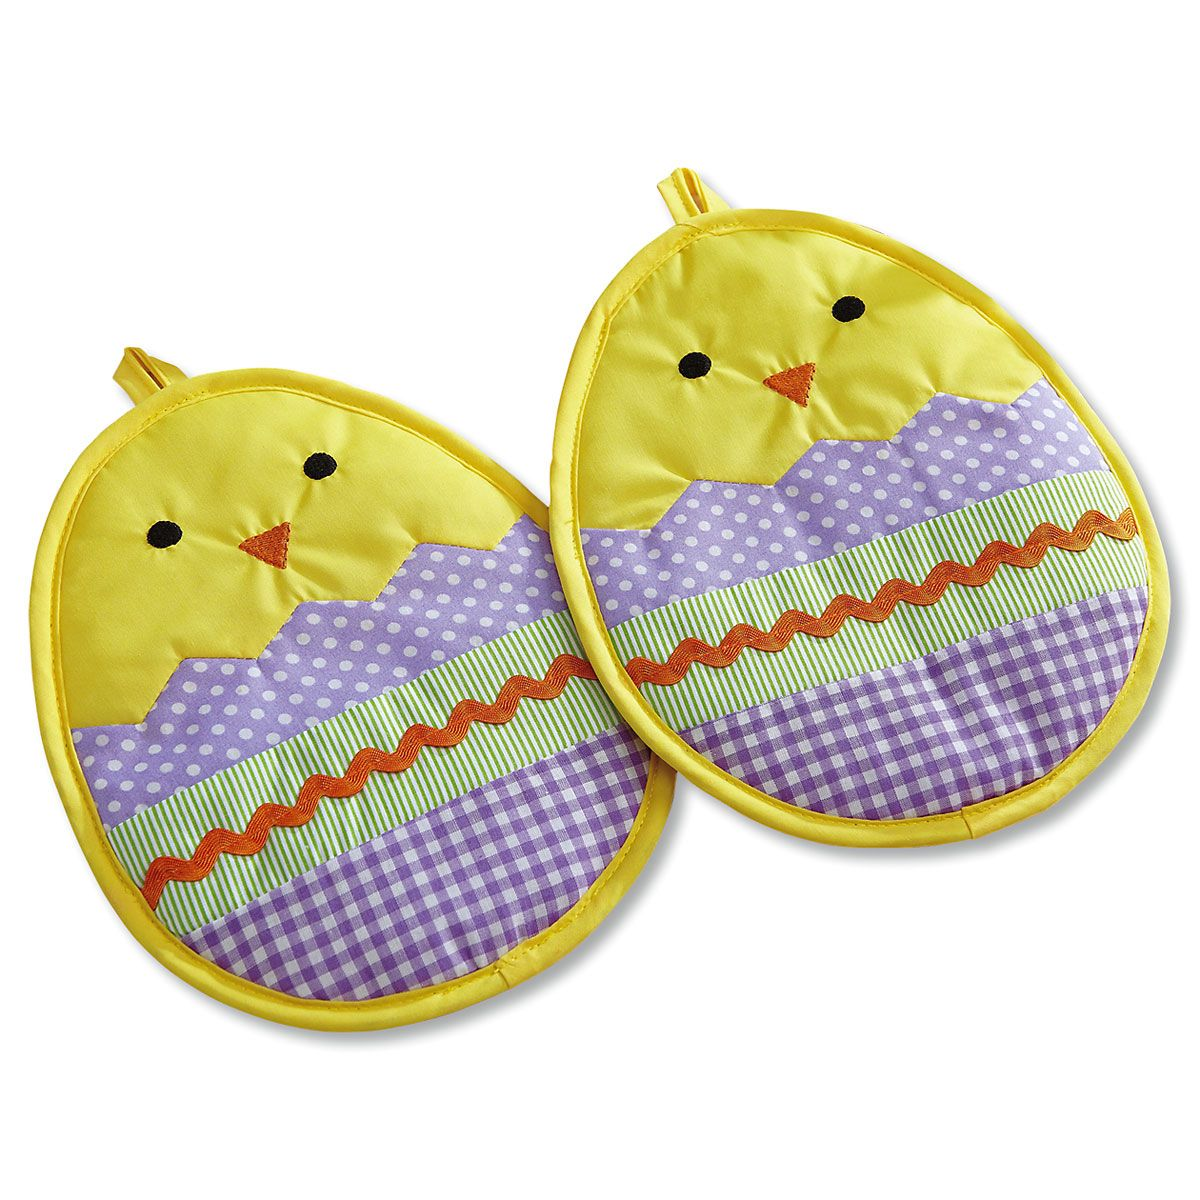 Chick in Egg Hot Pads